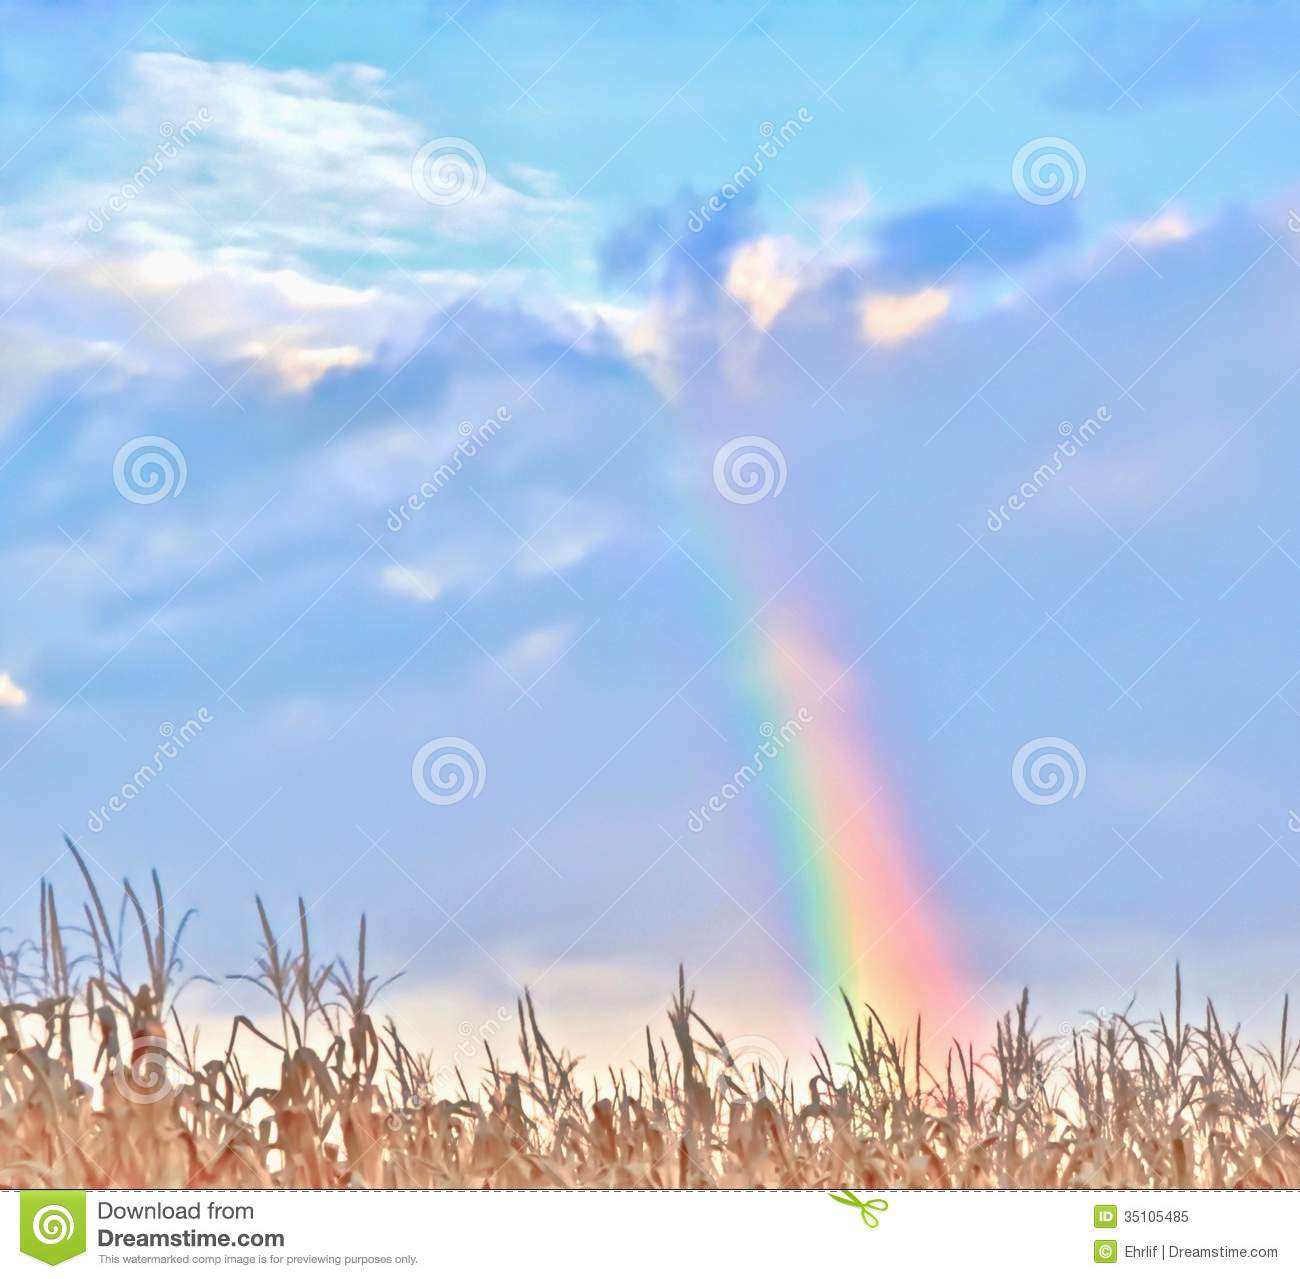 Forum on this topic: Winifred Shotter, rainbow-harvest/